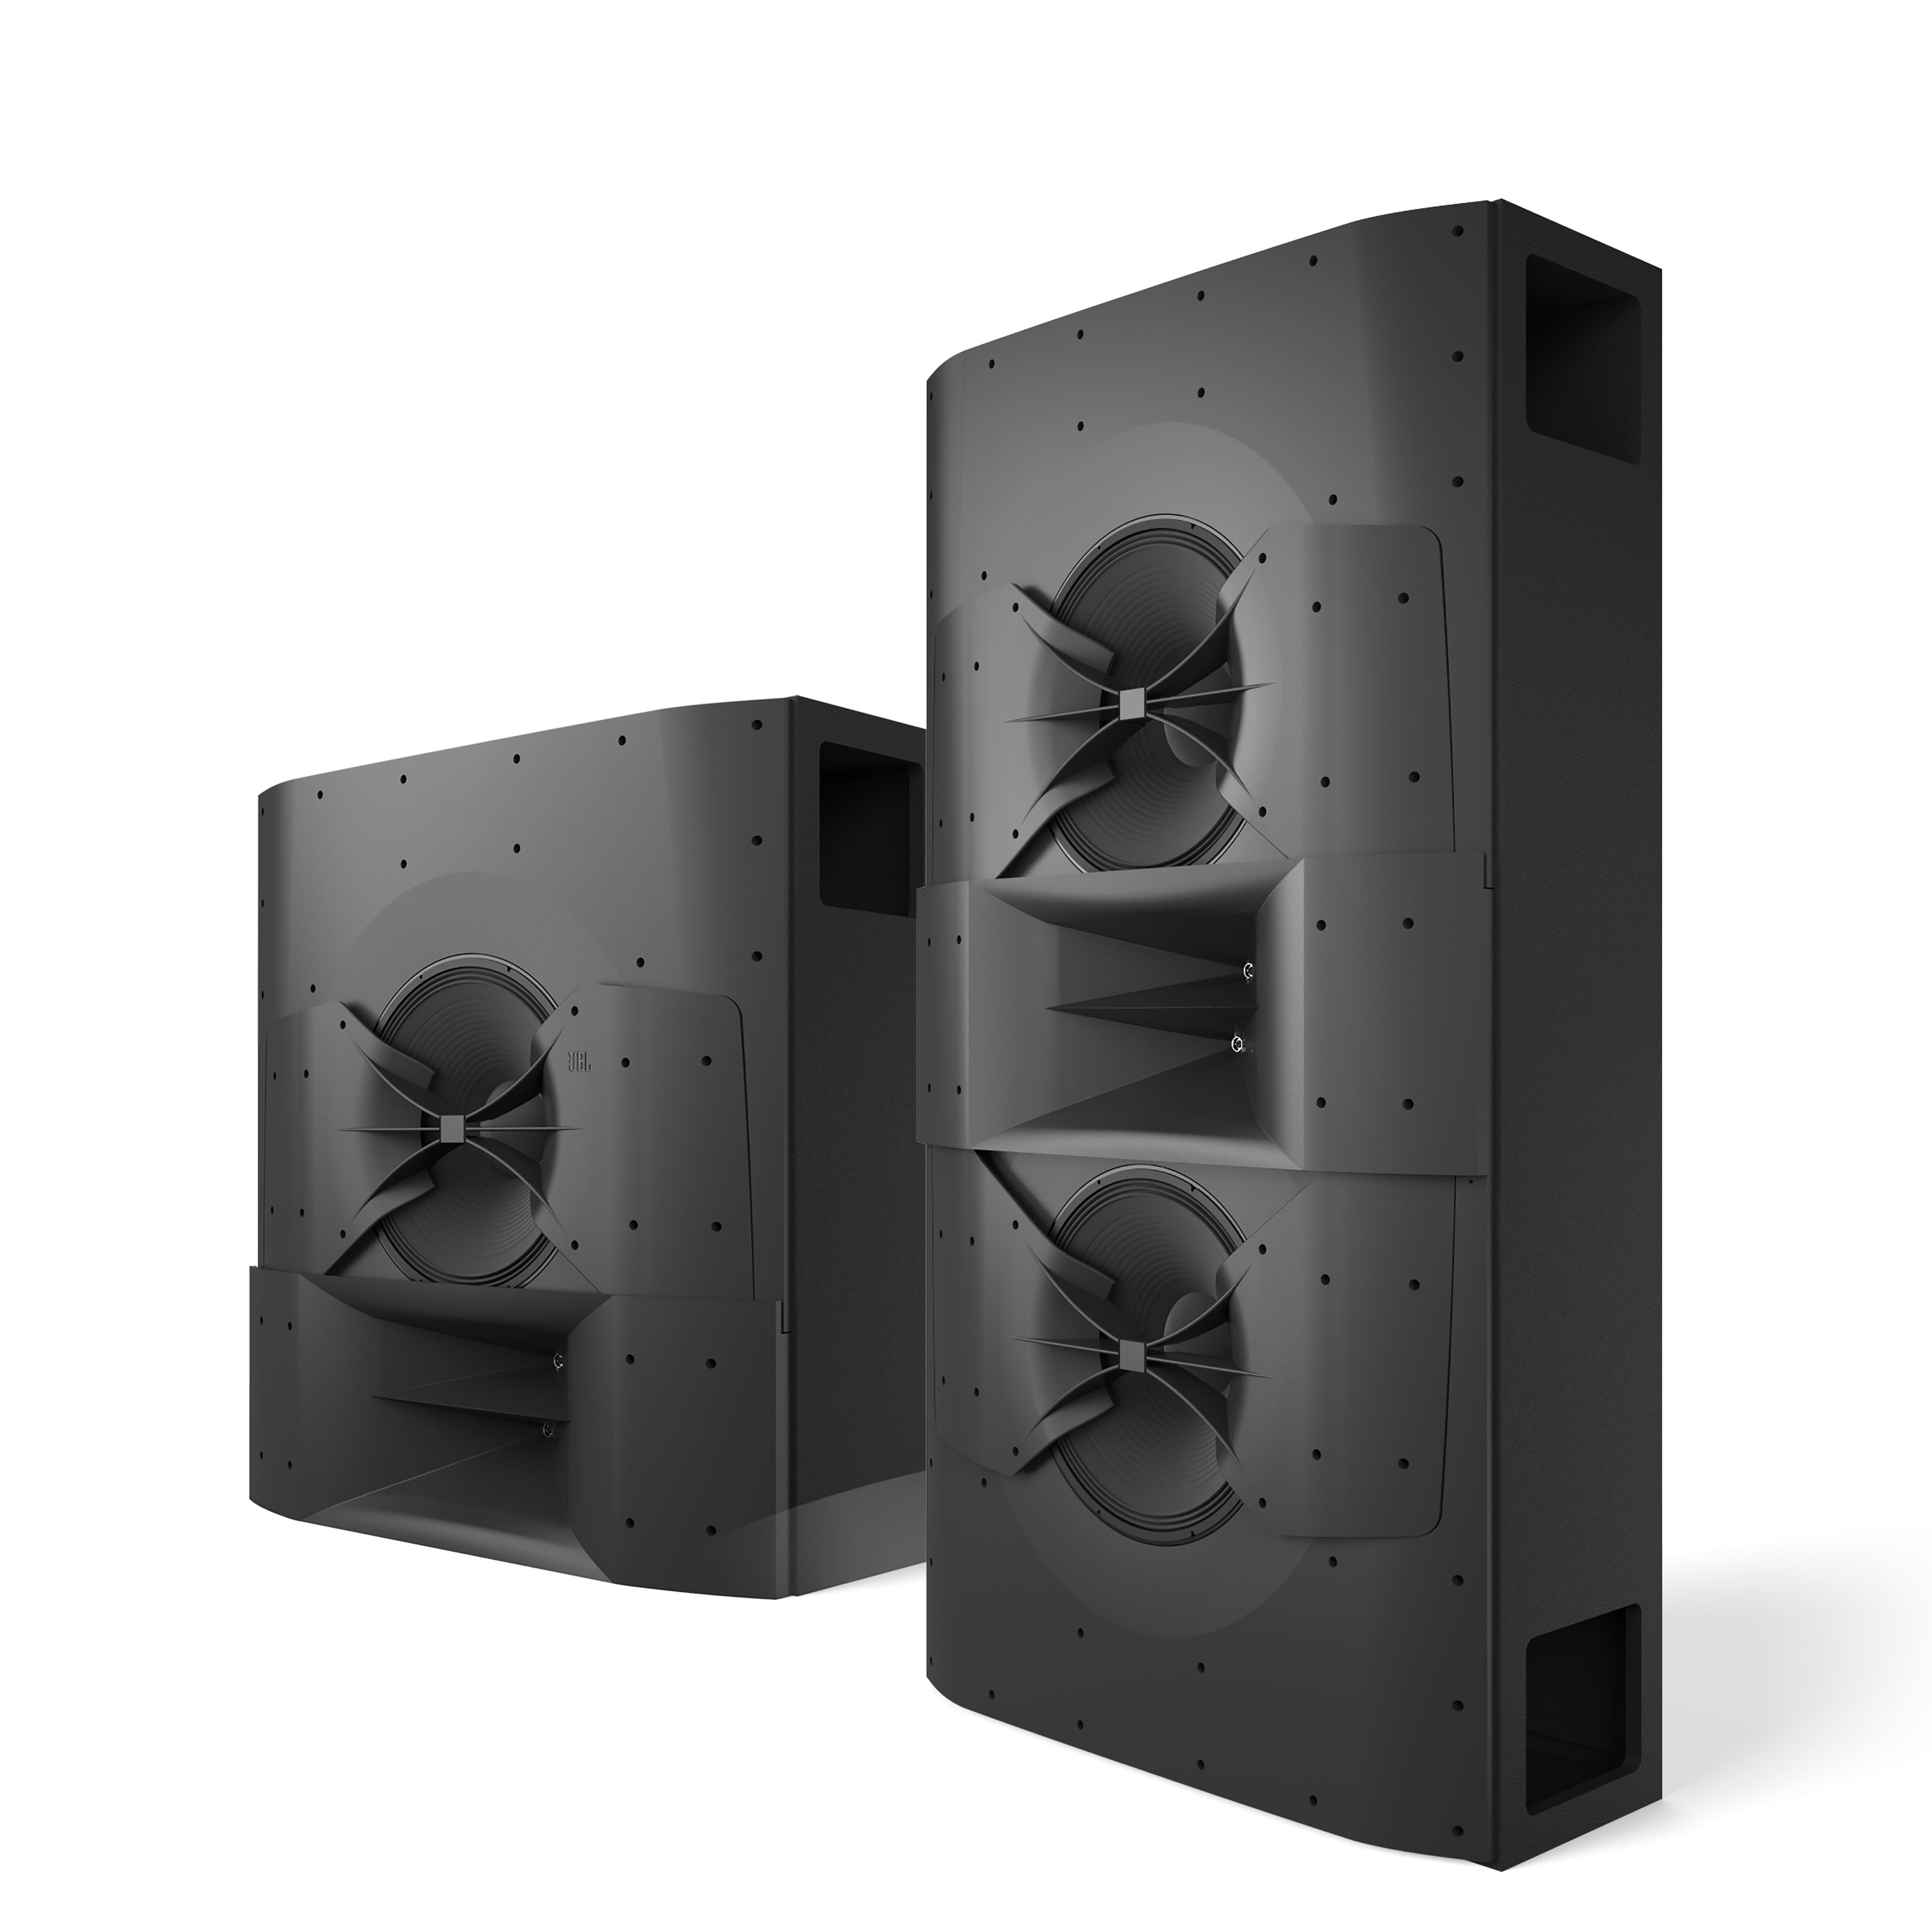 HARMAN Professional Solutions Announces Availability of JBL C221 and C222 Two-Way ScreenArray Cinema Loudspeakers